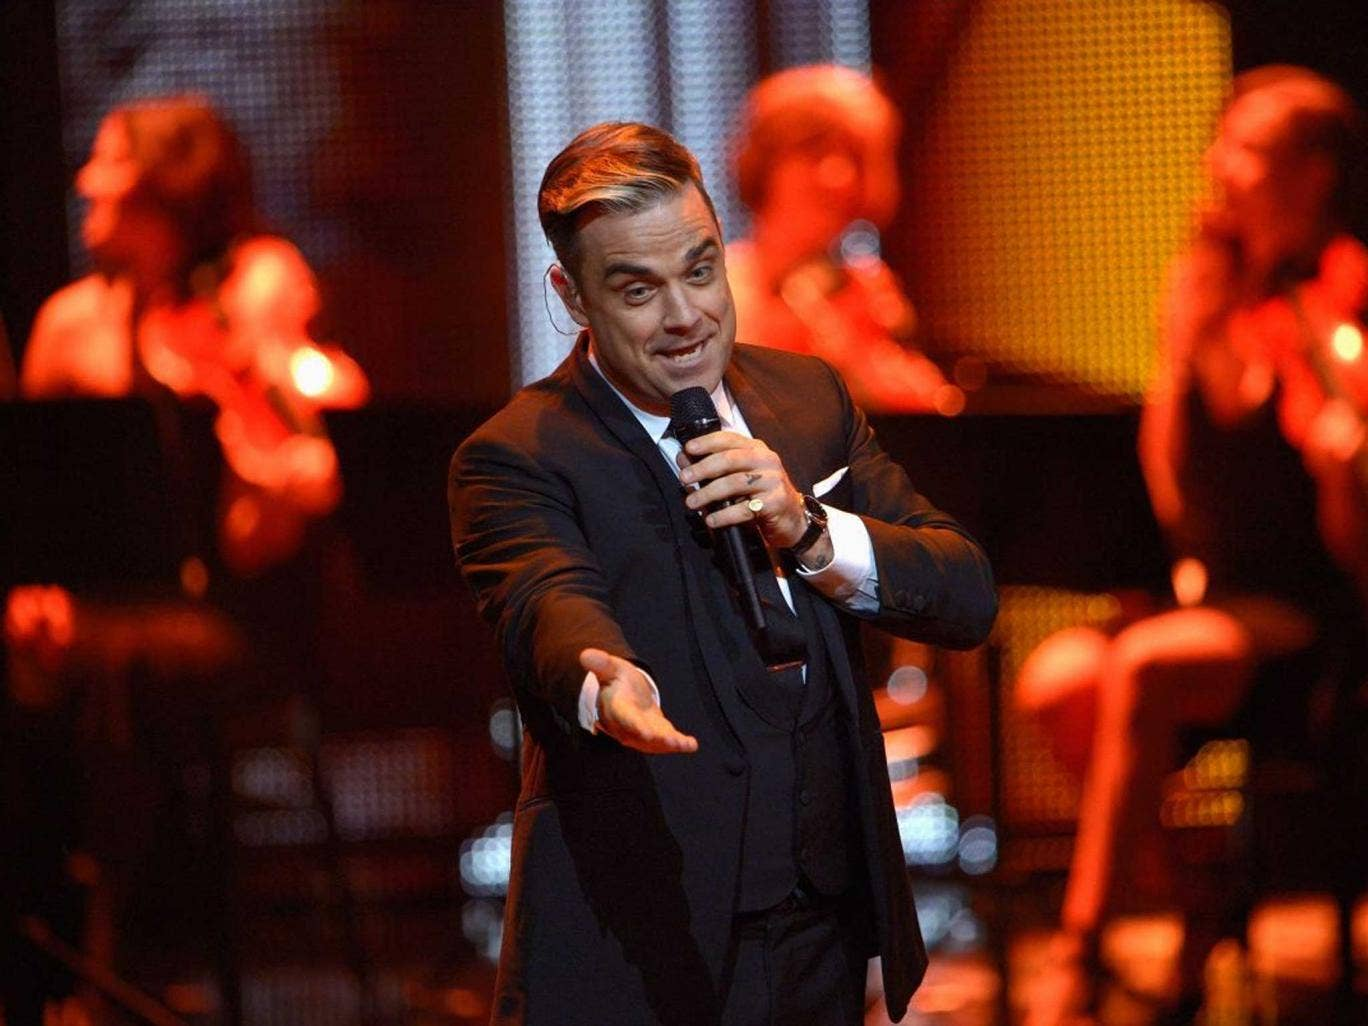 Ed Miliband chose Robbie Williams' famous track 'Angels' as one of his songs for Desert Island Discs